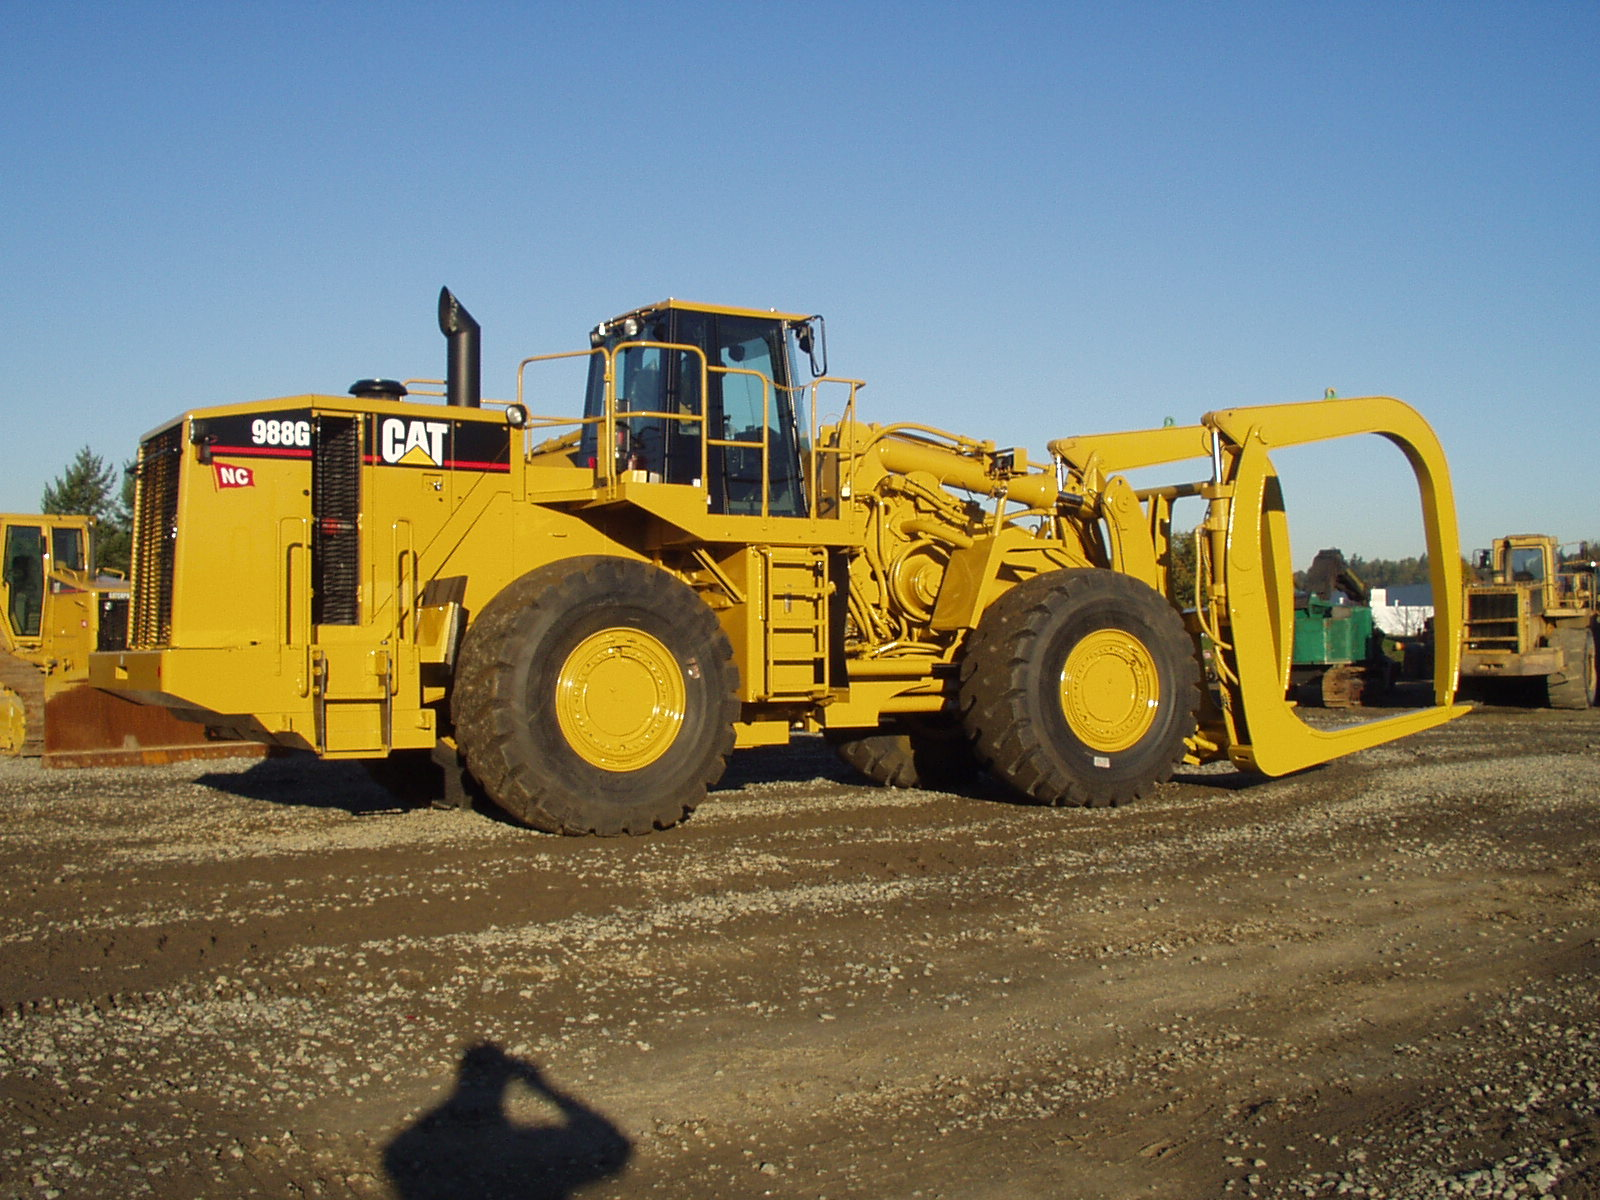 Caterpillar 988 photo - 8